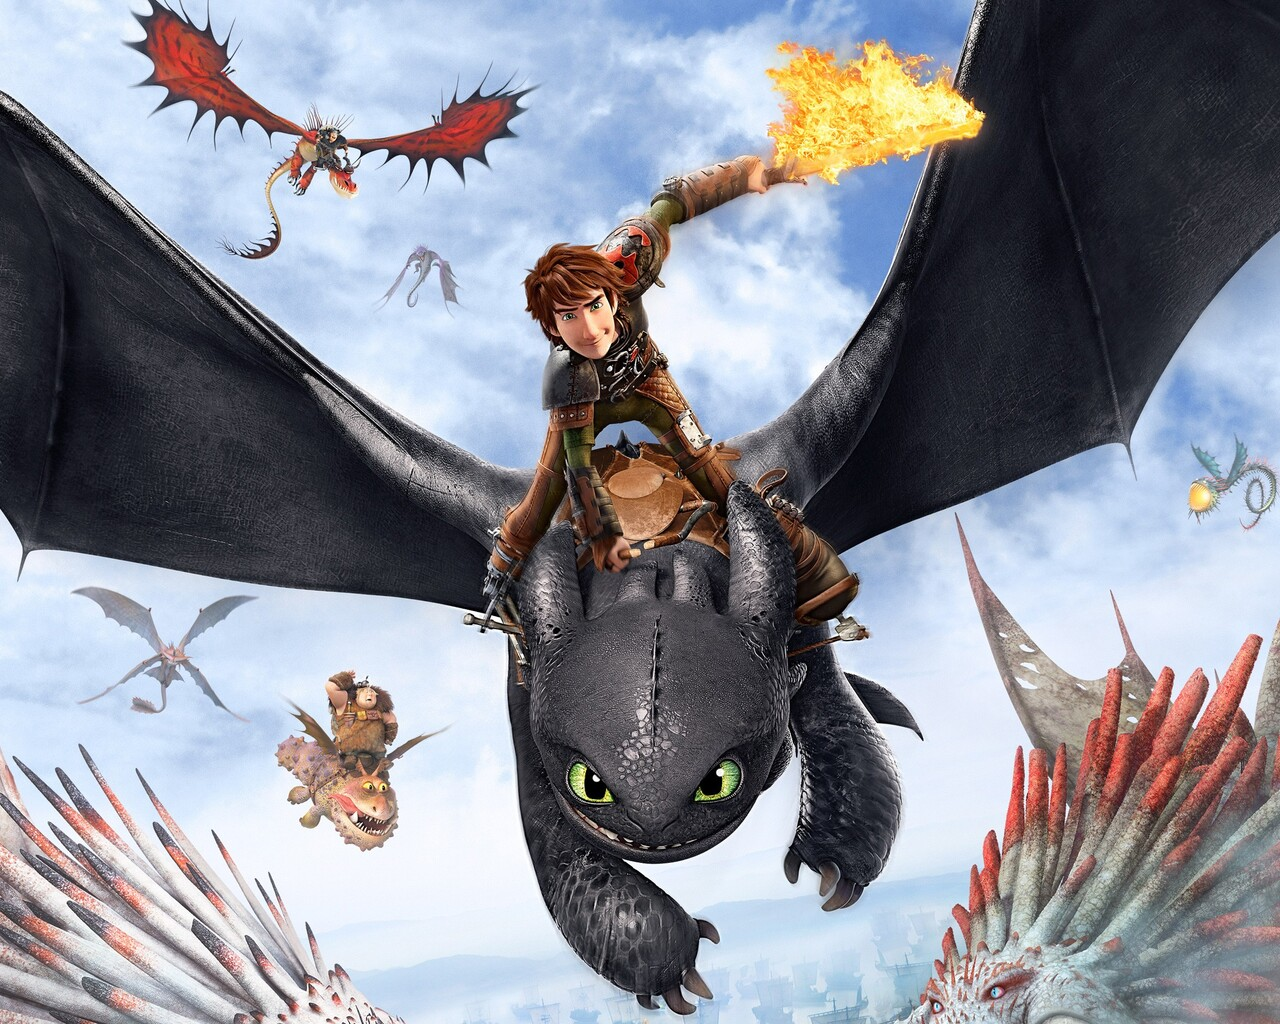 1280x1024 how to train your dragon 2 1280x1024 resolution hd 4k